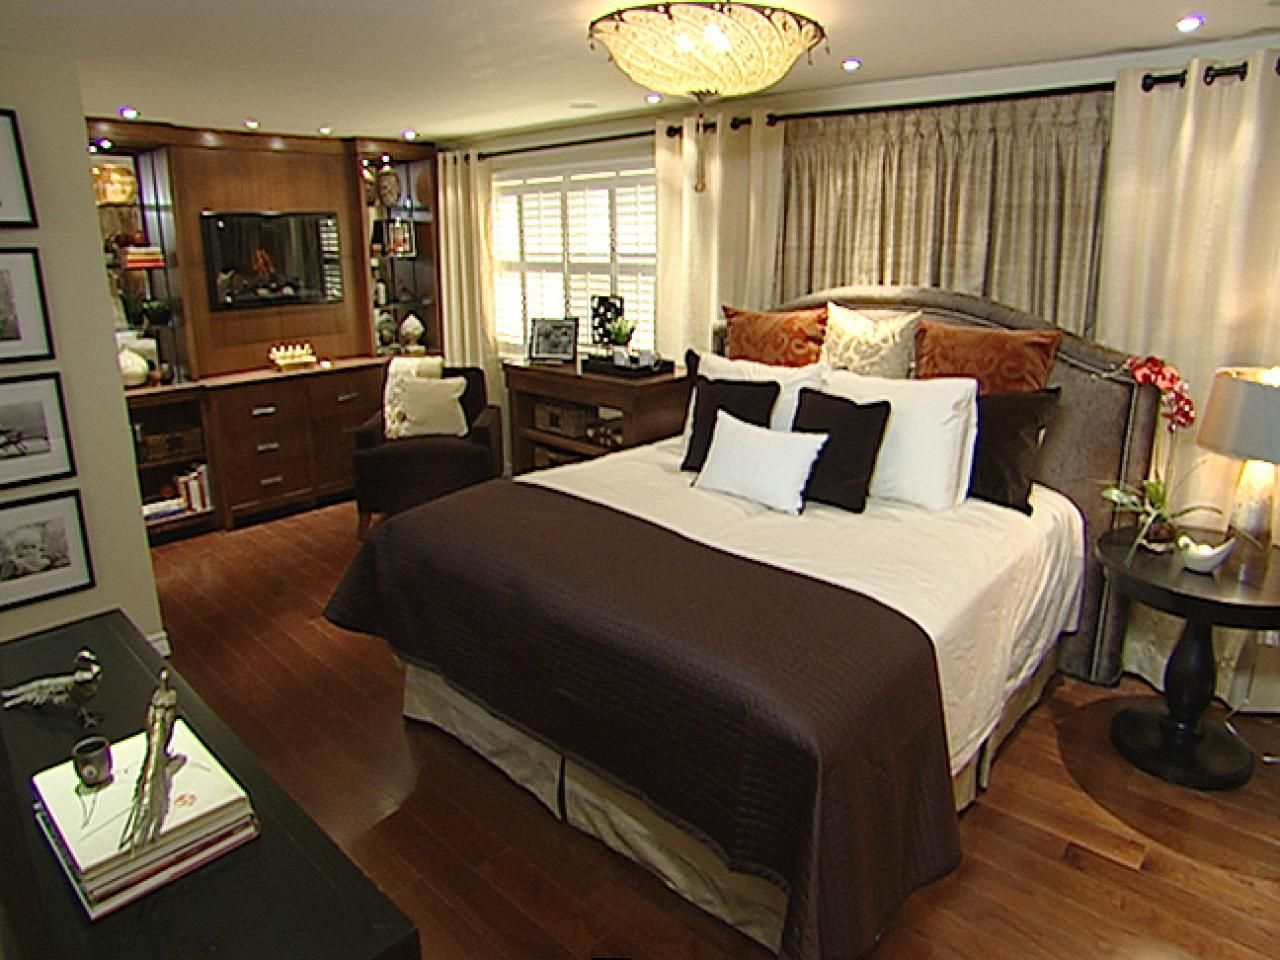 Candice Olson Bedroom Designs Gorgeous 10 Bedroom Retreats From Candice Olson  Bedroom Retreat Candice Design Decoration